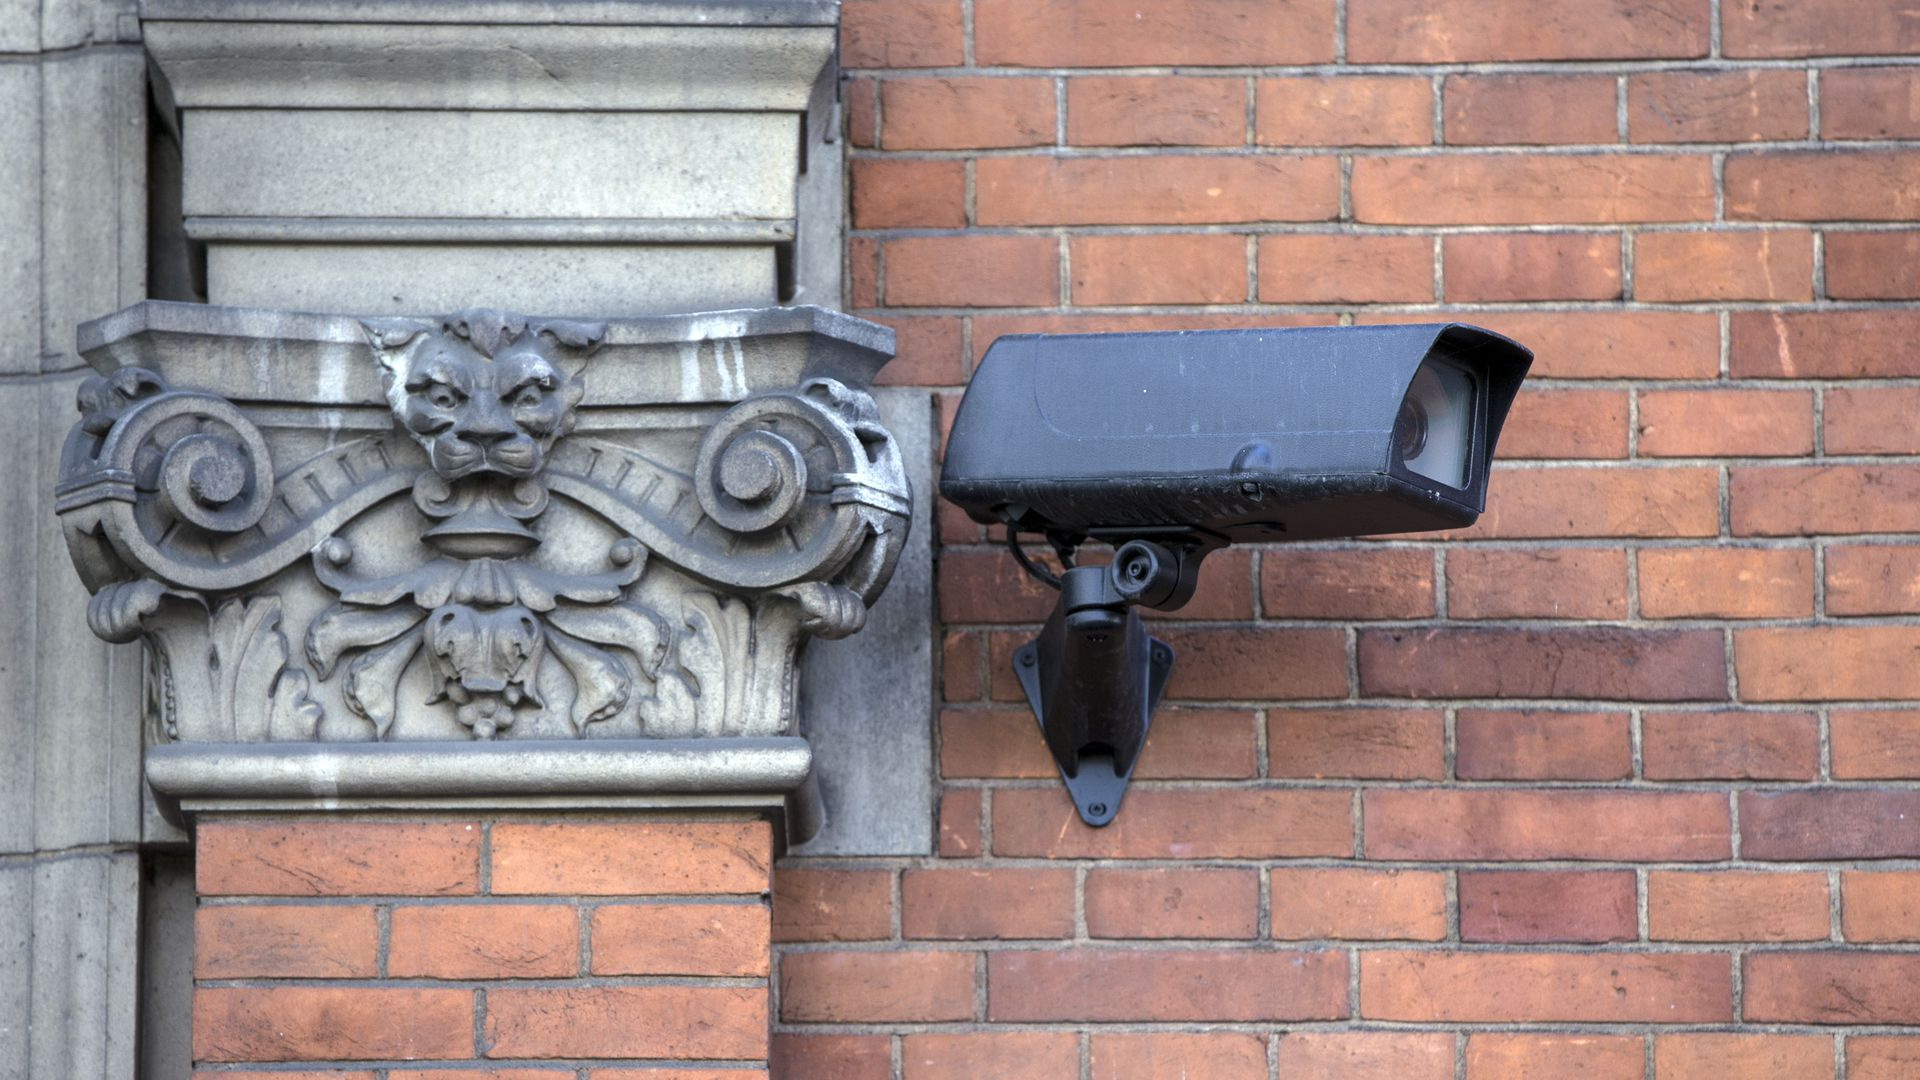 A surveillance camera is mounted on a wall.